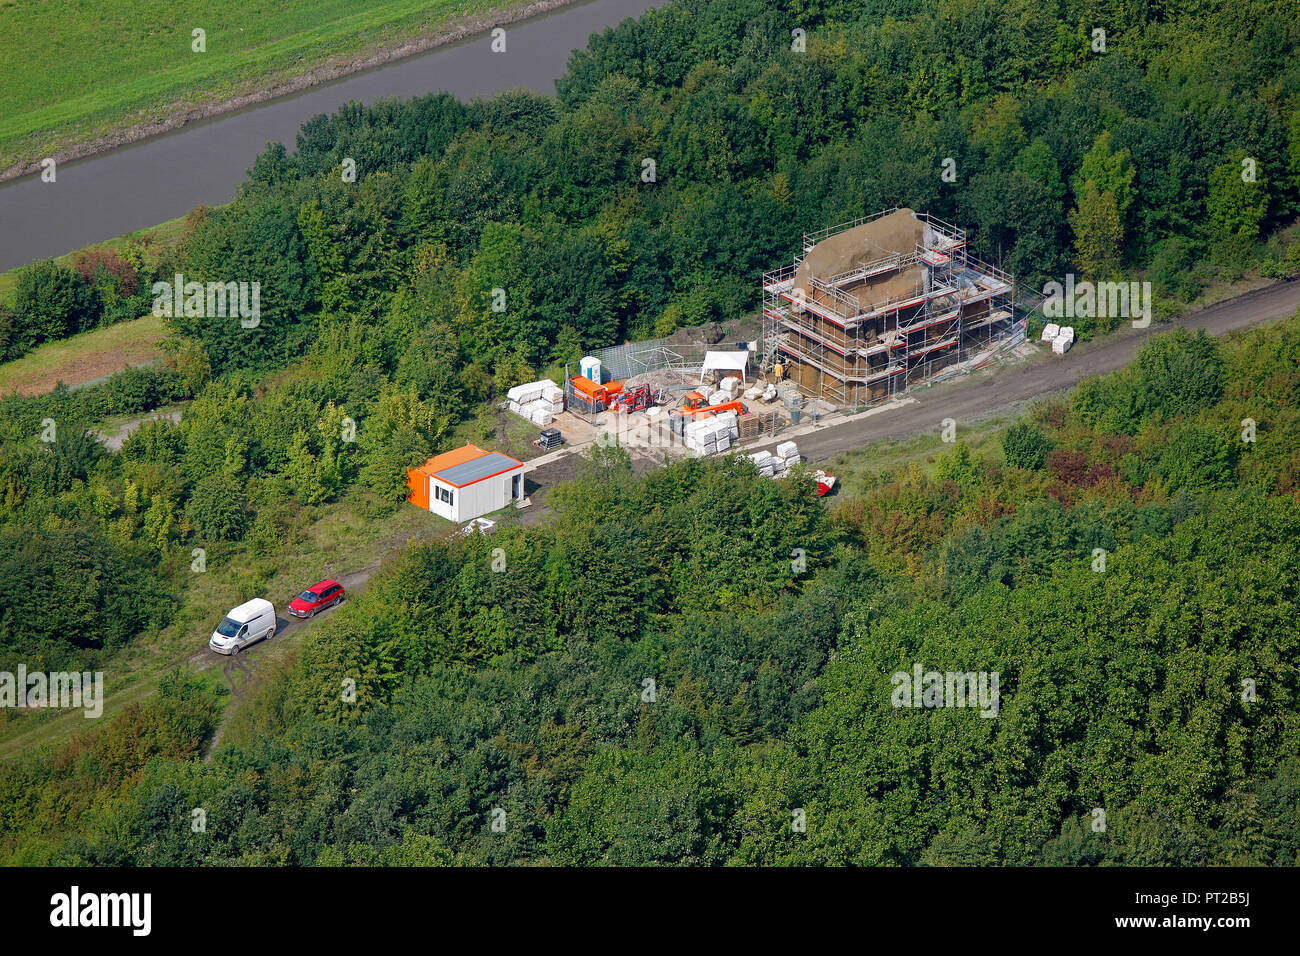 Aerial view, Emscher, Art, Olaf Nicolai and Douglas Gordon with Mogwai Monument for a forgotten future, Stone, Wild Island, lock, Gelsenkirchen, Emscherkunst.2010, Artworks at the Emscher, Ruhr area, North Rhine-Westphalia, Germany, Europe, - Stock Image